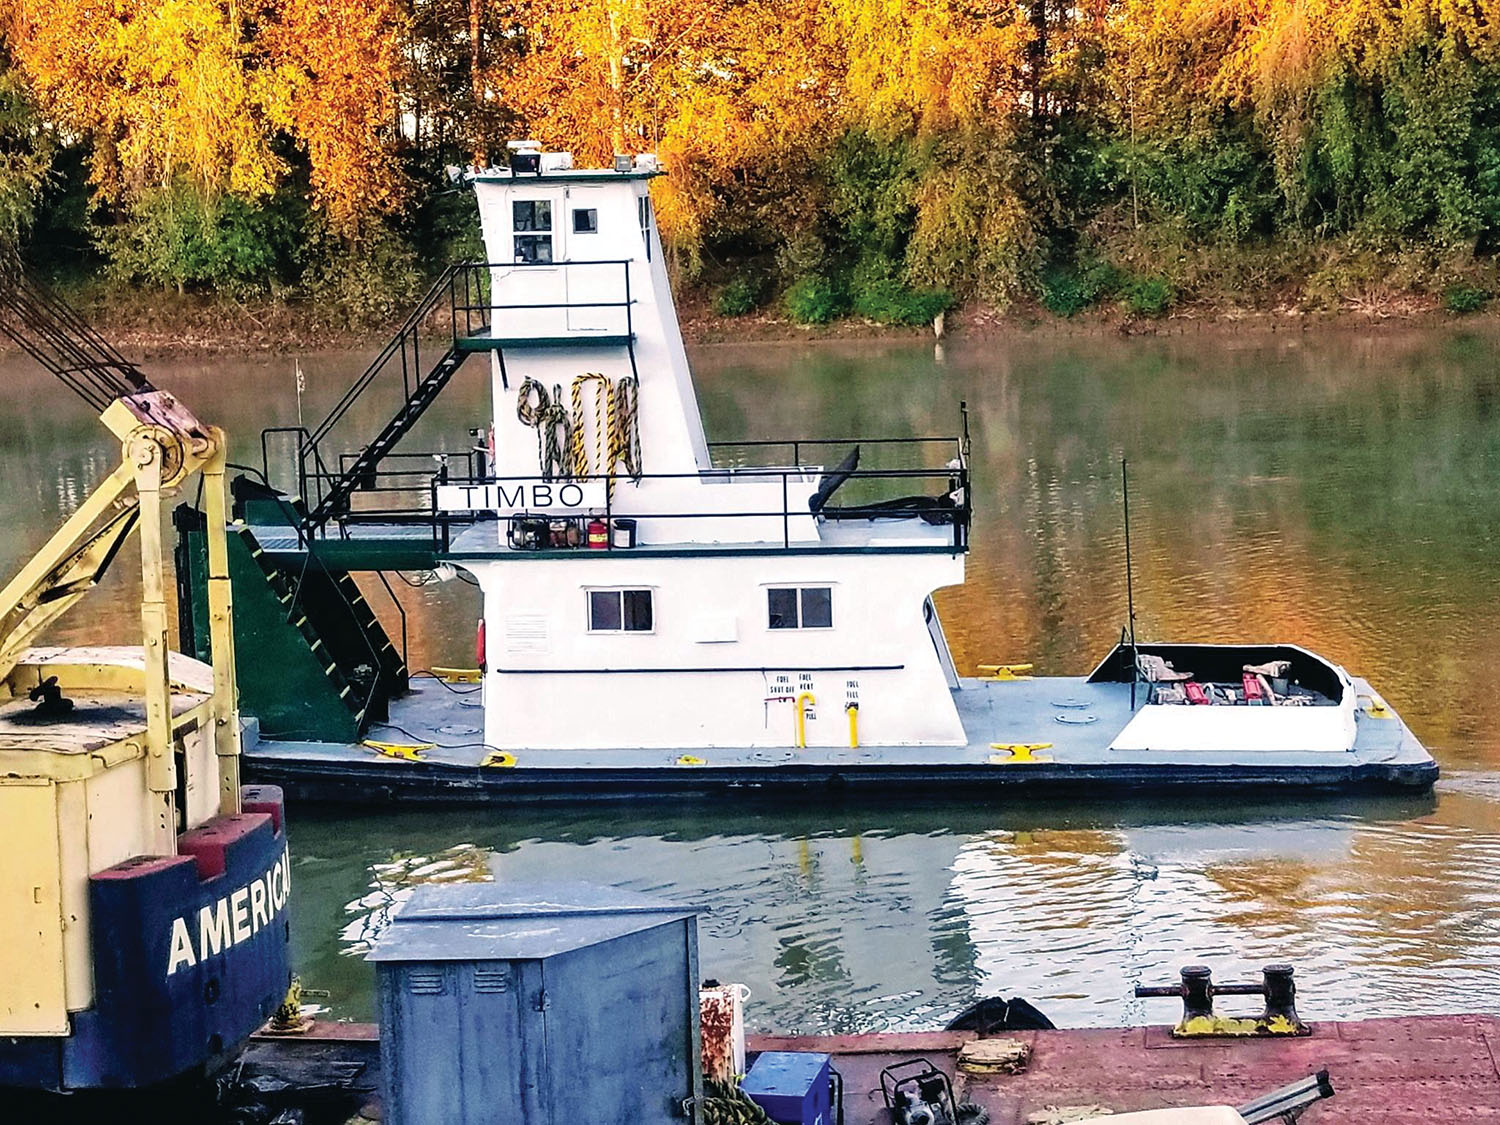 Wabash Marine has put the mv. Timbo up for sale, following the end of the coal-barging business on the Green River.